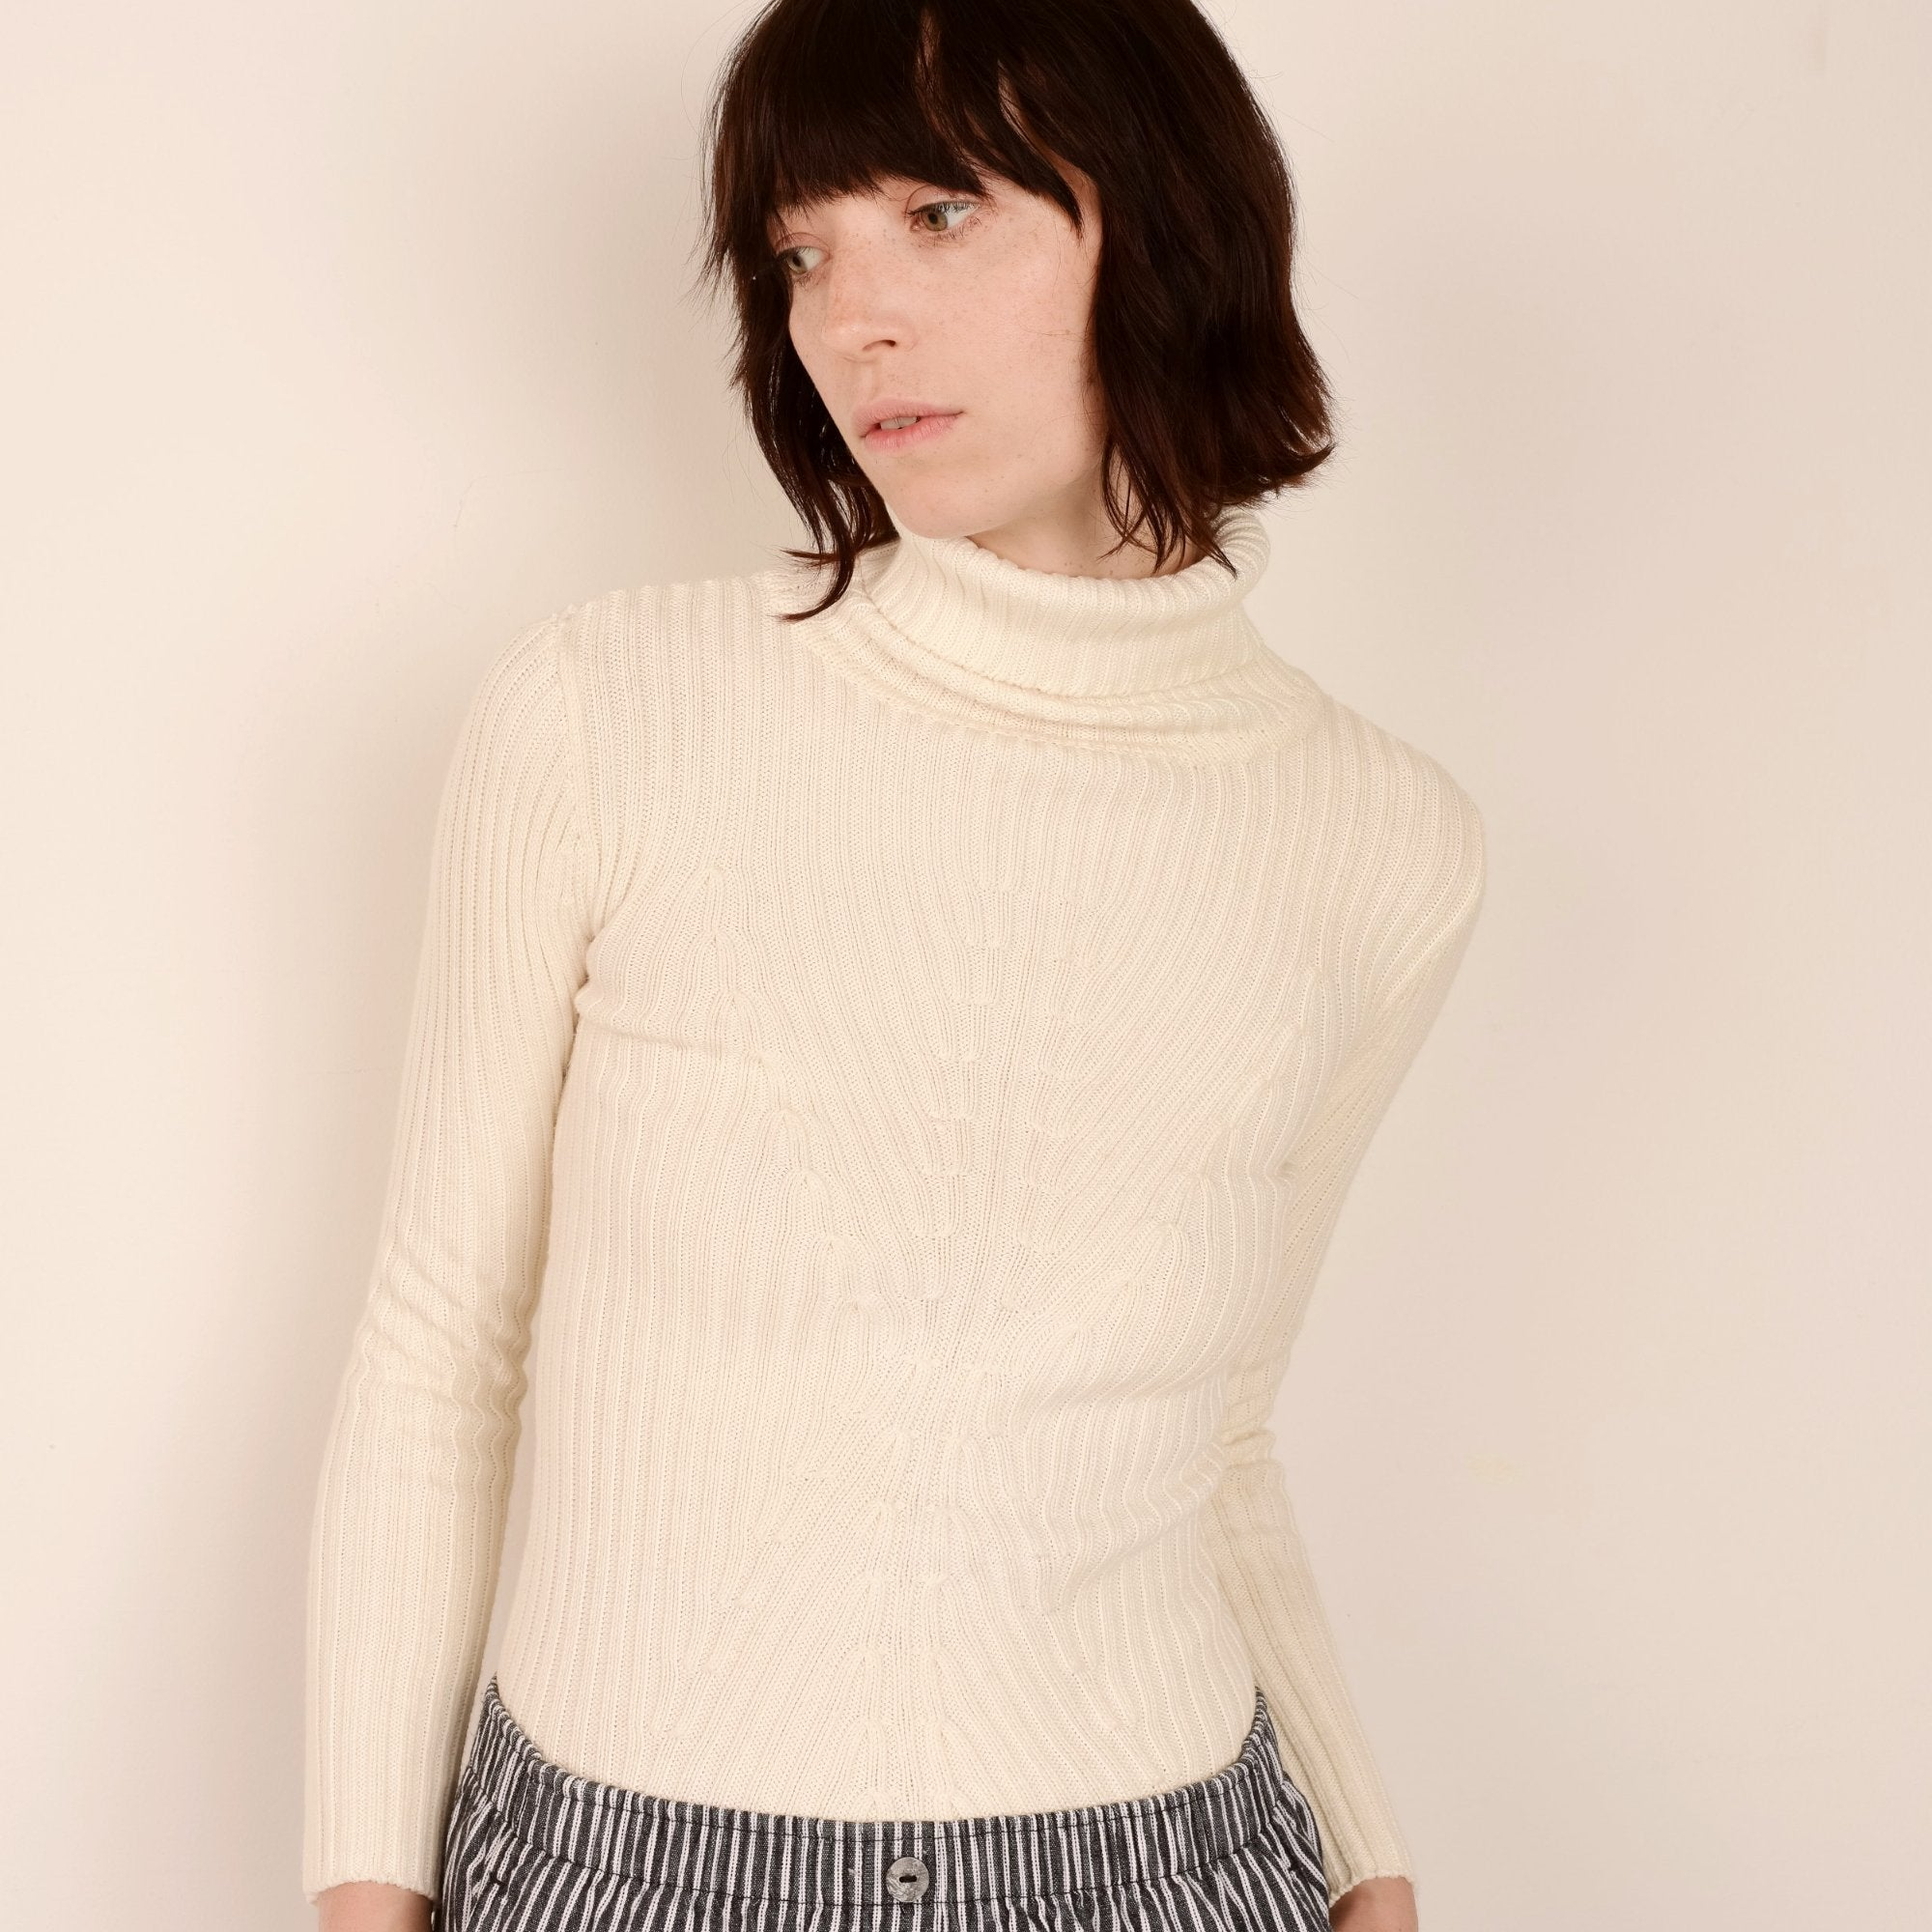 Vintage Creme Knit Turtleneck Top / XS